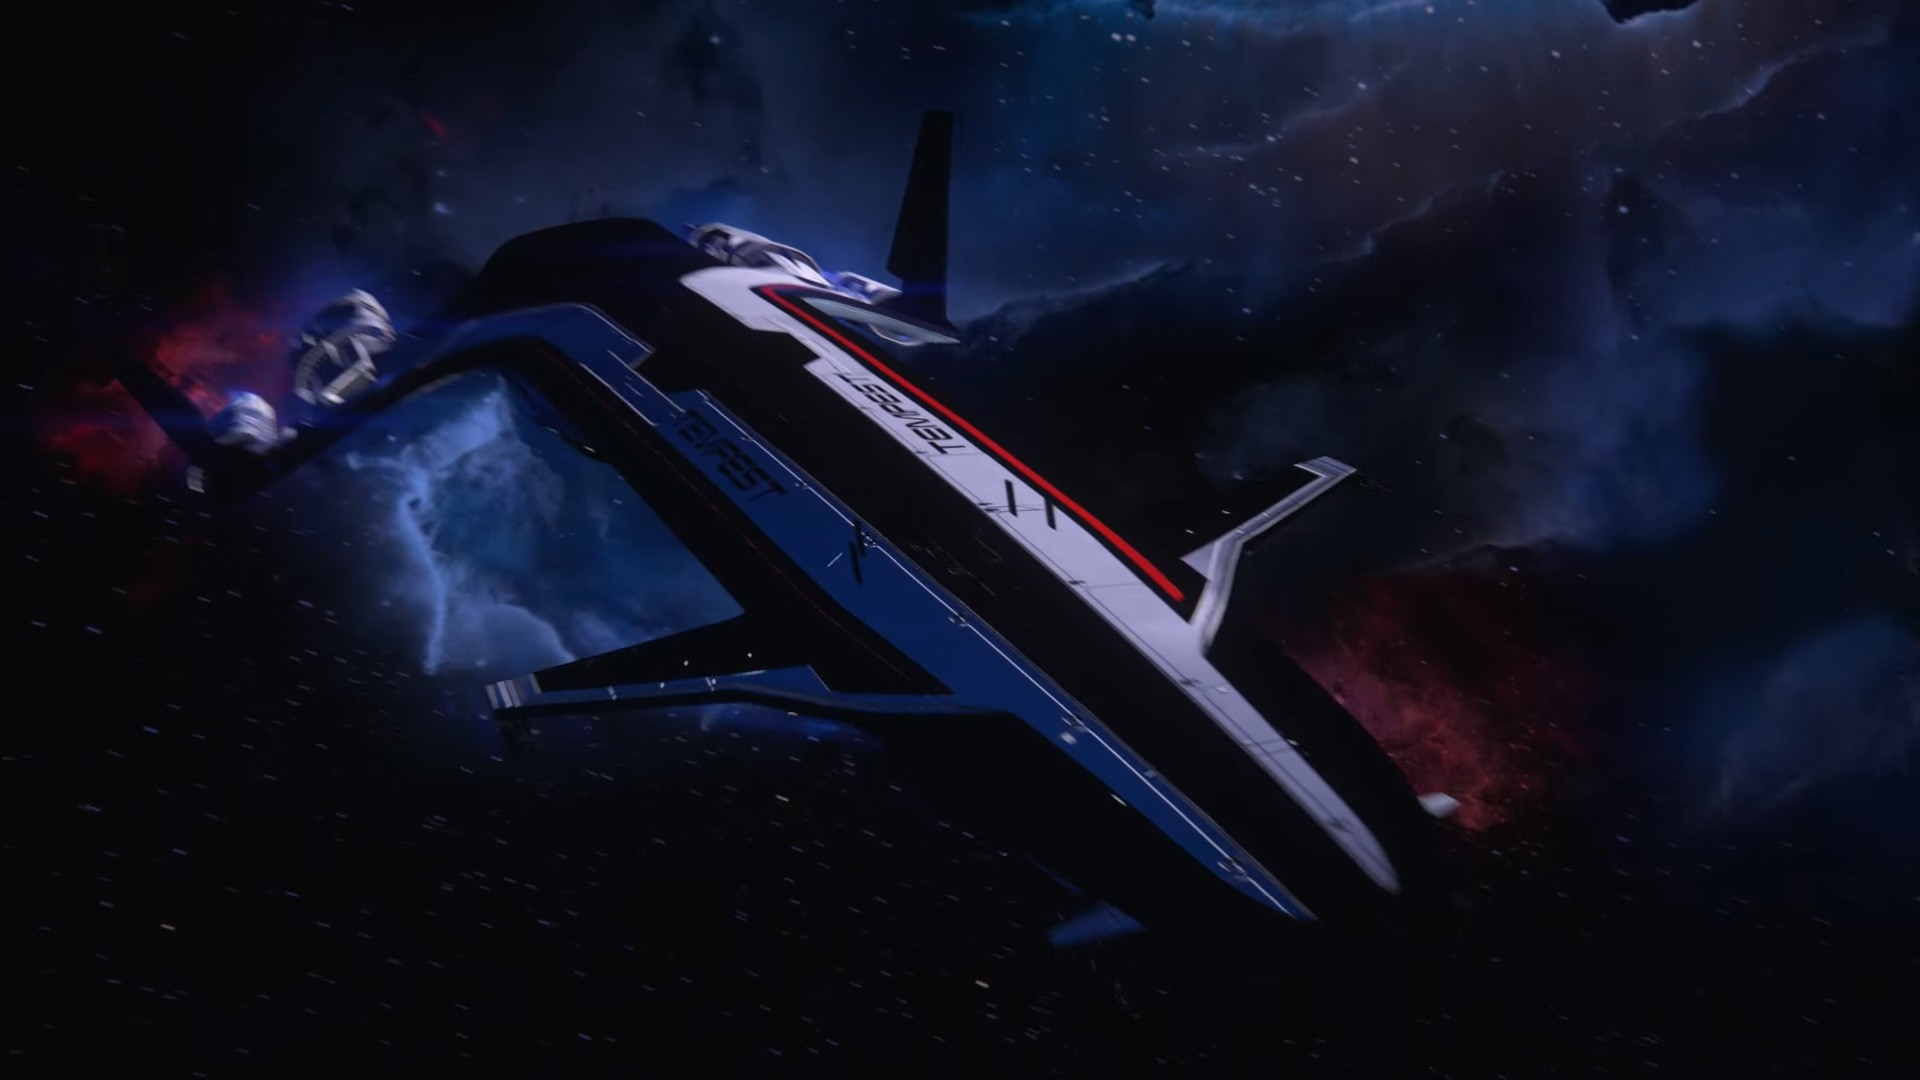 So when does Mass Effect: Andromeda take place?